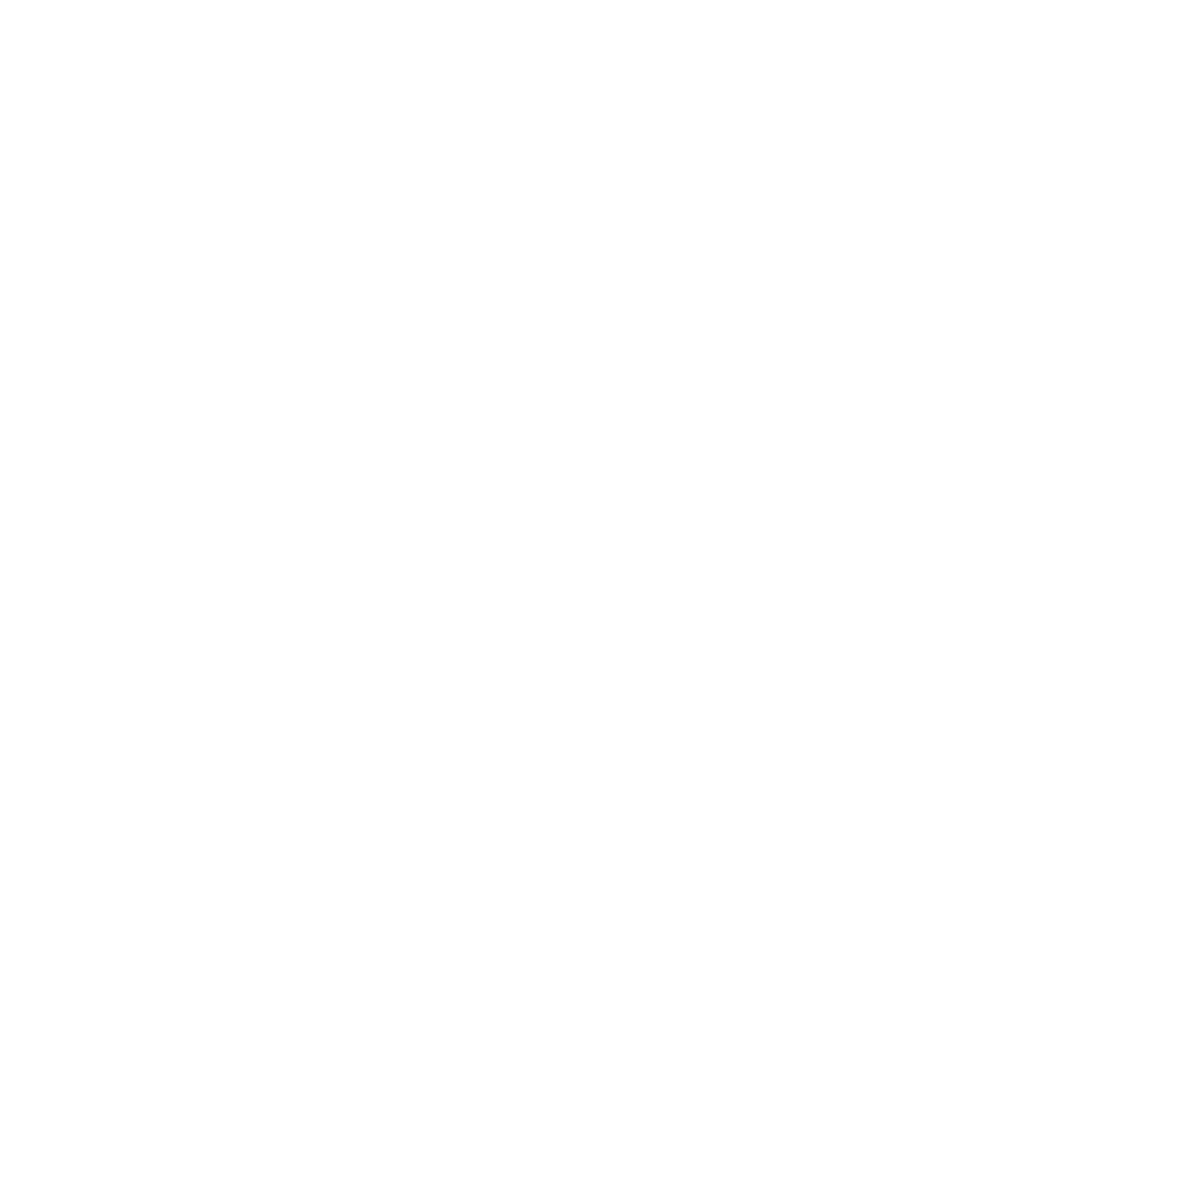 Psychoactive frog tessellation representing the branding phase of their services